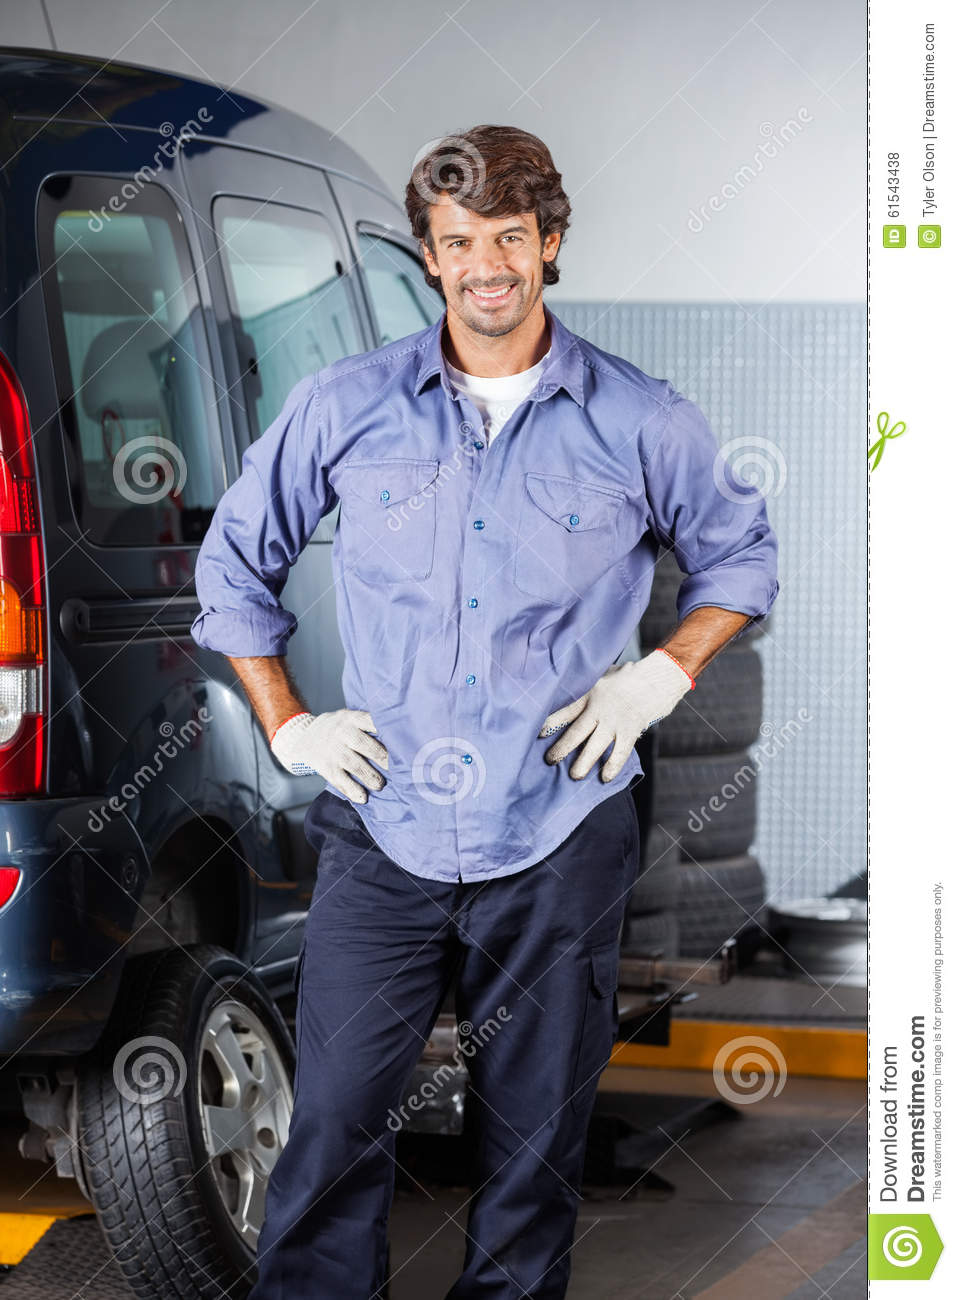 Hands On Garage : Mechanic standing with hands on hip by car stock photo